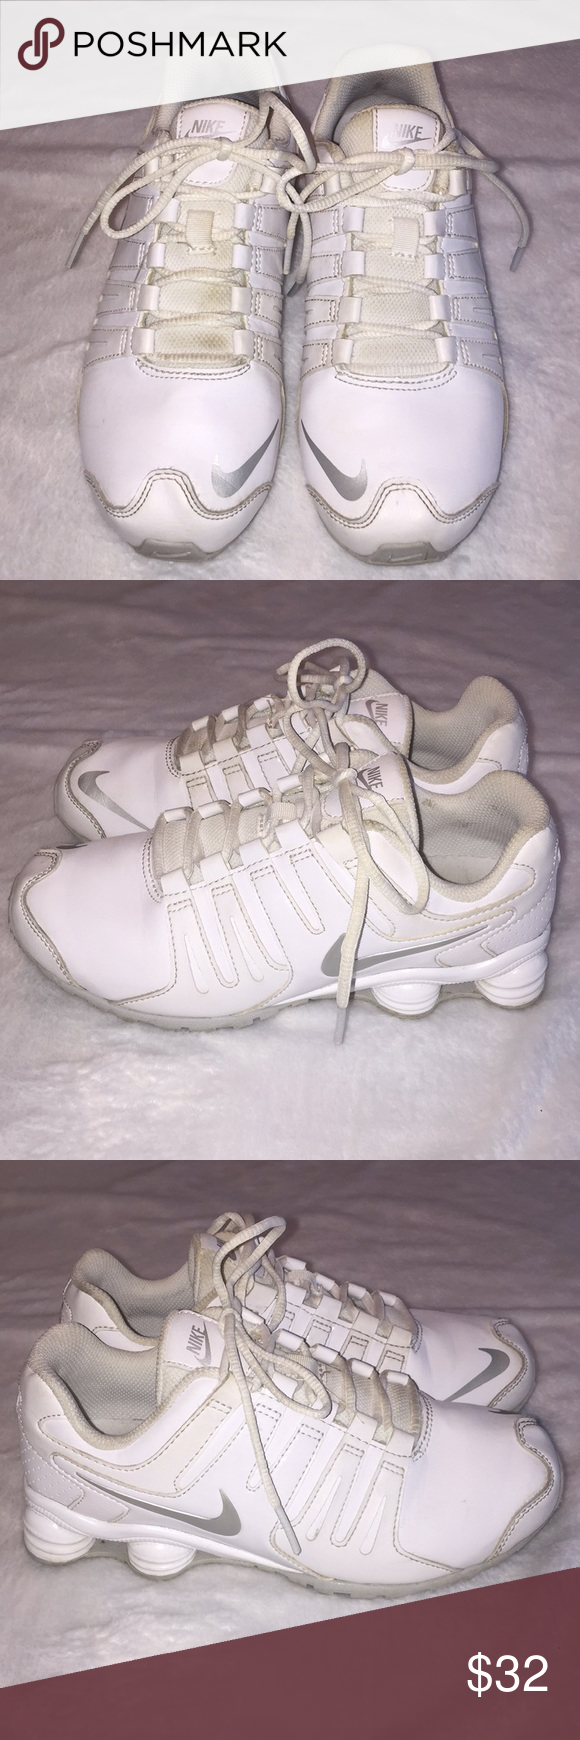 f5866c073d4d7d Boys Nike Shox athletic shoes size 3 youth. This is a pair of boys Nike